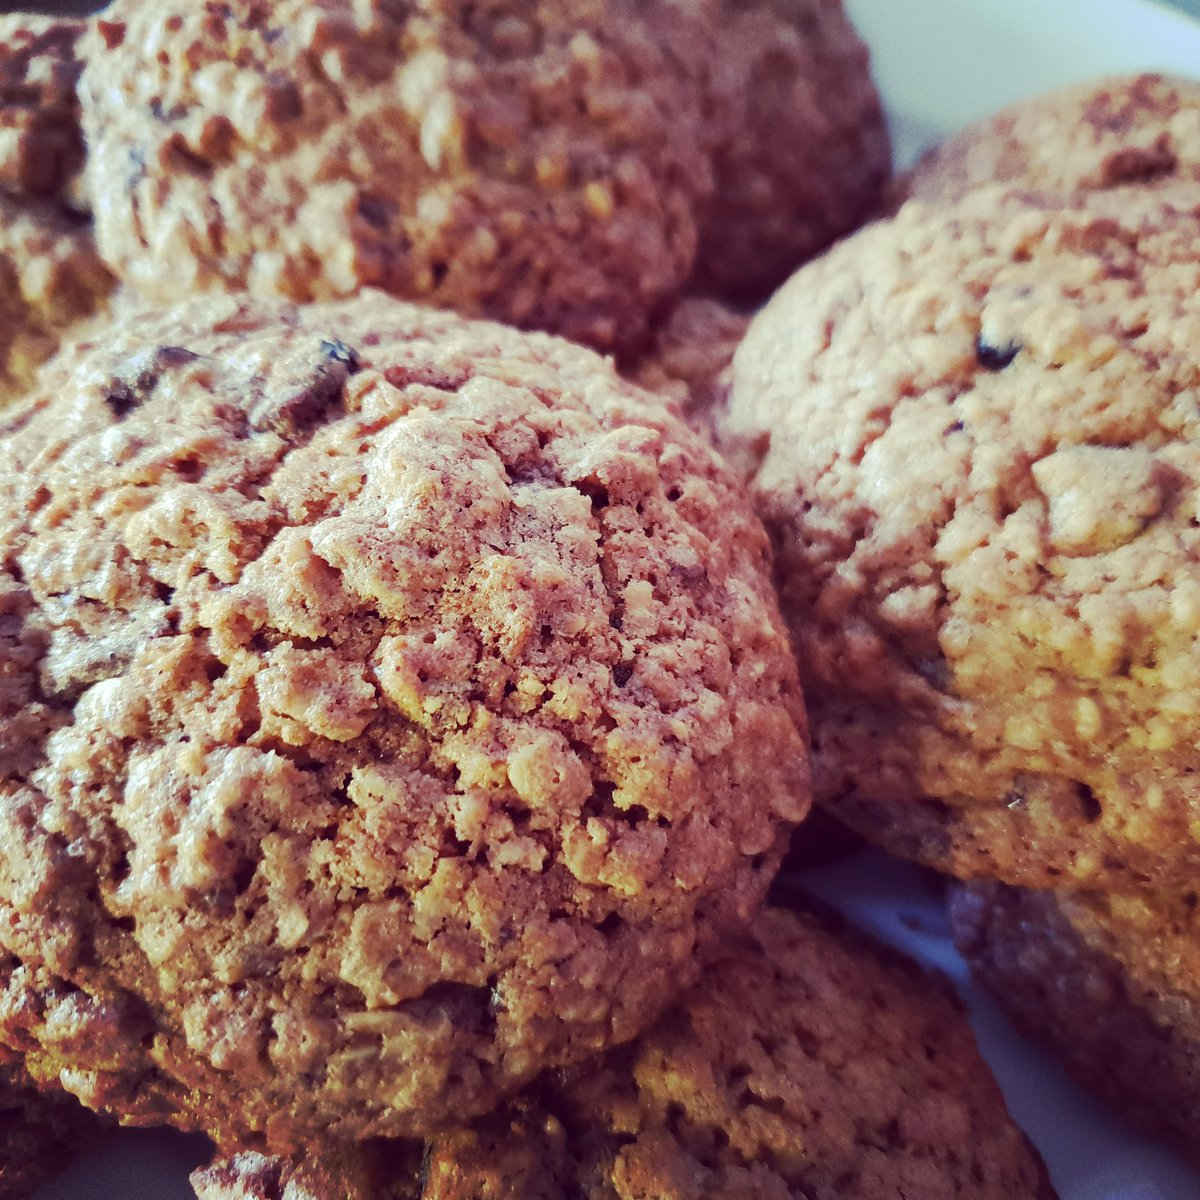 Oatmeal cookies with cranberries and chocolate! #yummy #tasty #cookies https://t.co/6r3oXVfVmI